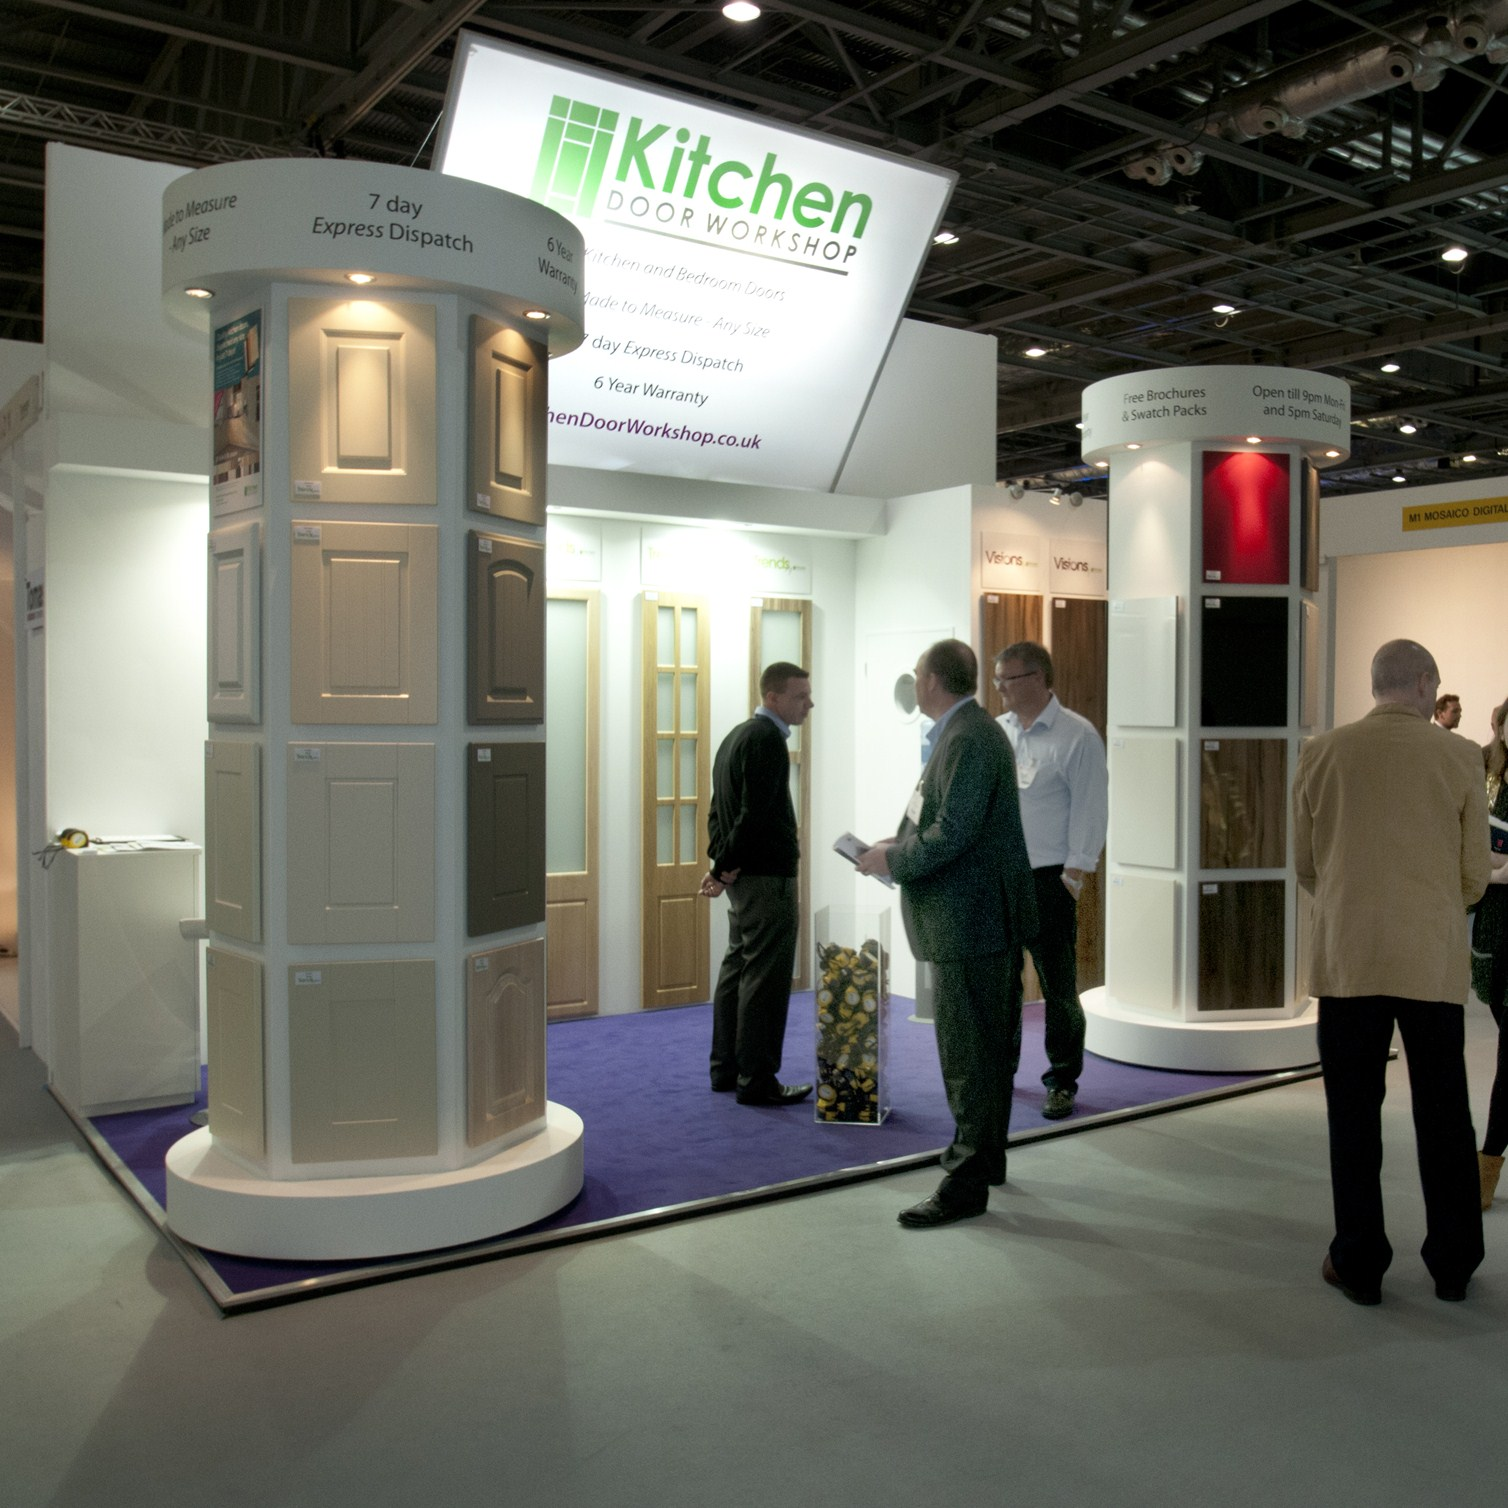 Kitchen door workshop announces its attendance at kbb for Kbb birmingham 2016